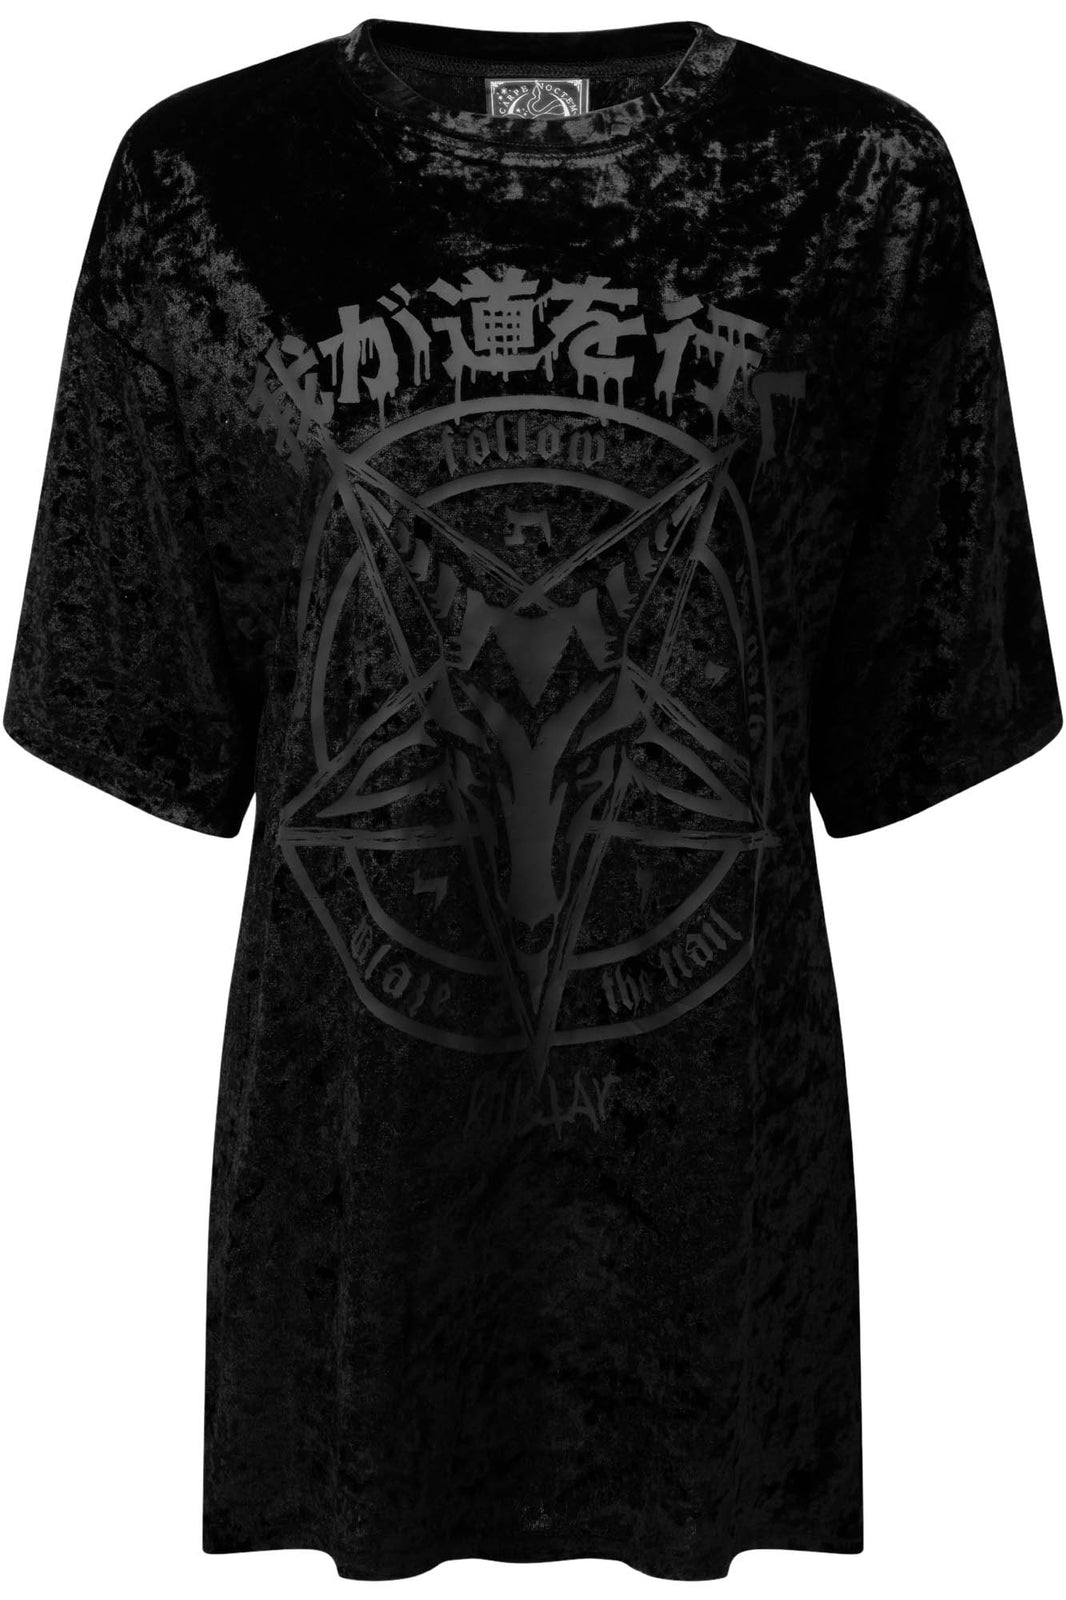 In2 Darkness Velvet B/F Tee